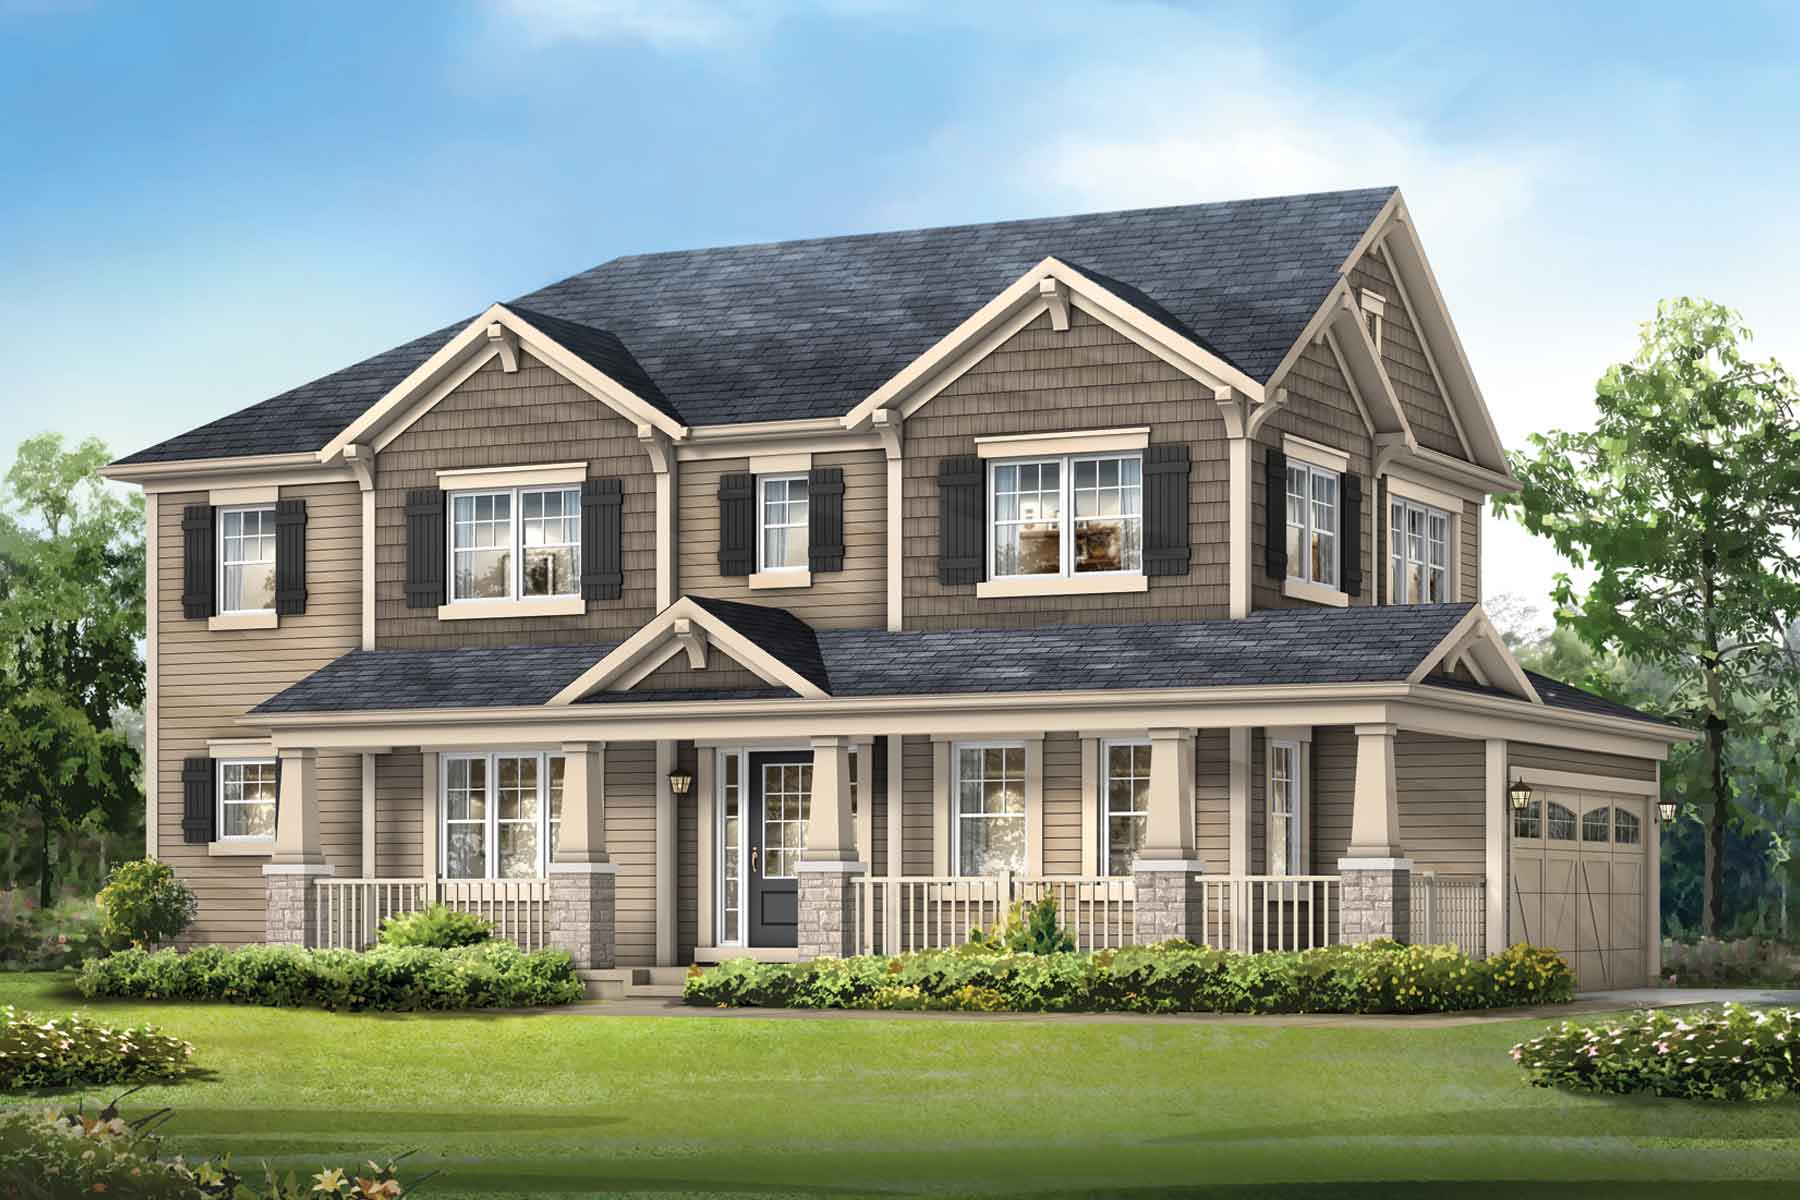 Kingsley Corner Plan elevationc_southwinds_kingsleycorner_main at Southwinds in Airdrie Alberta by Mattamy Homes